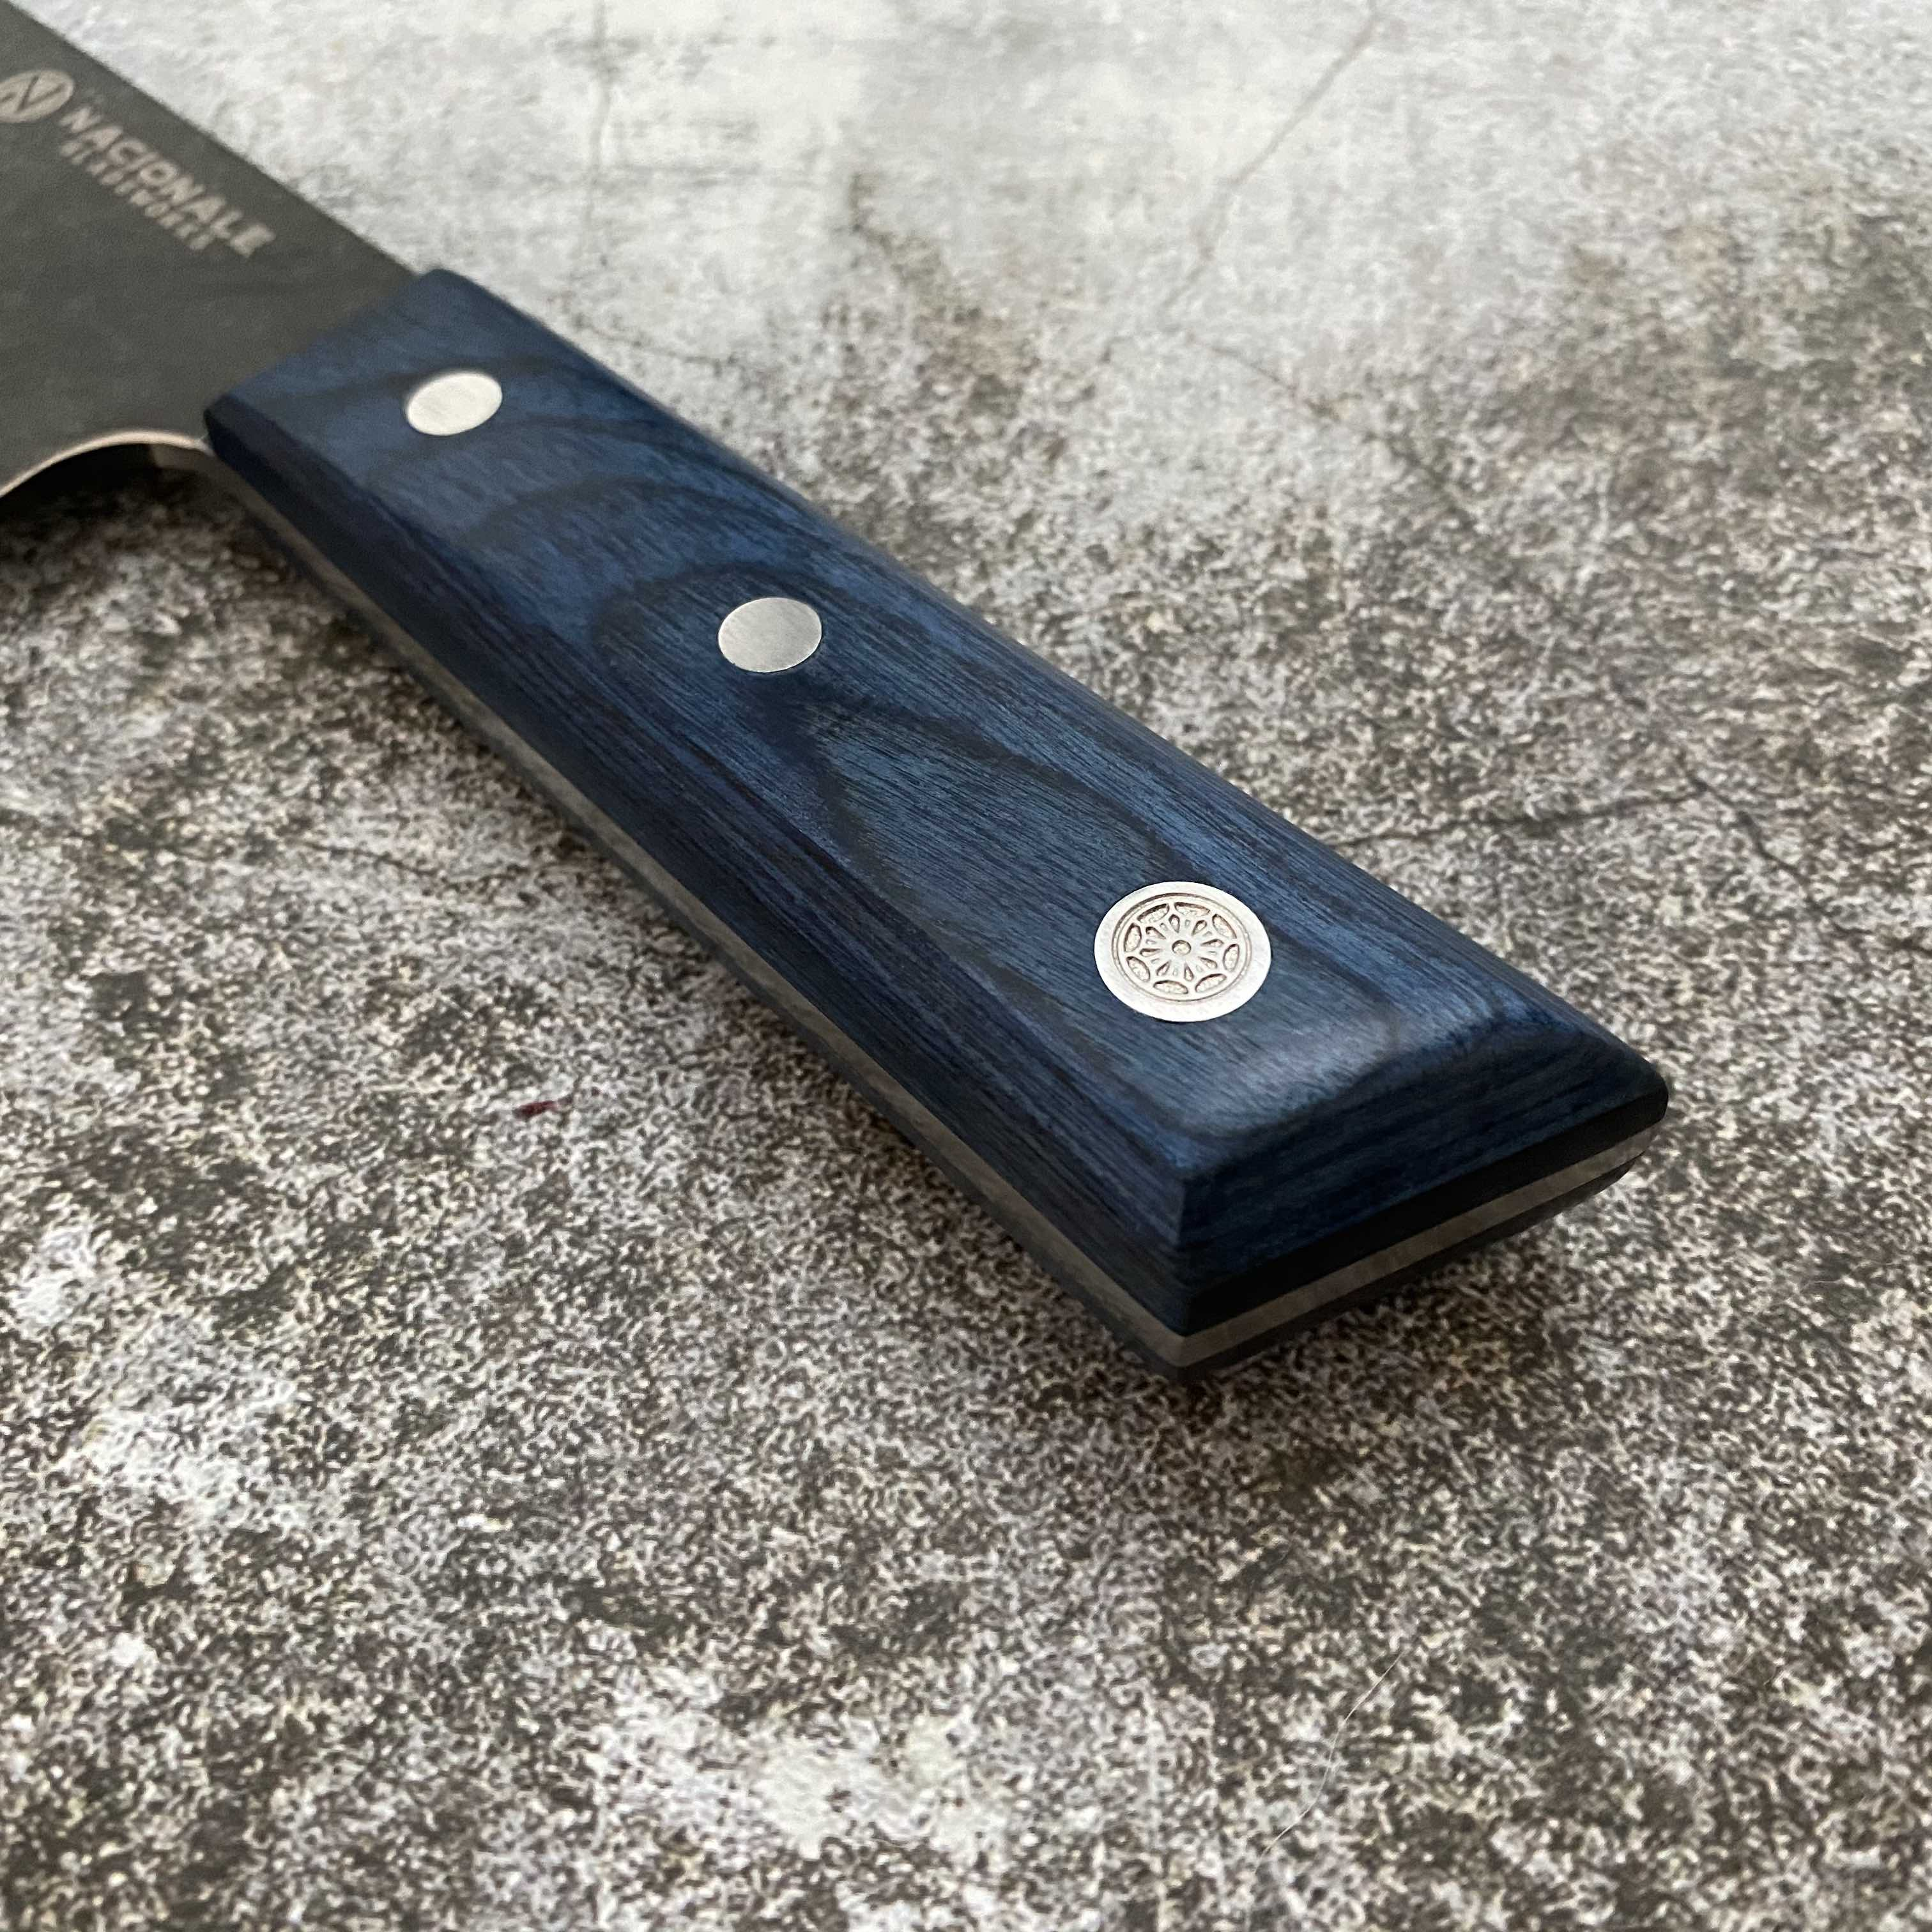 180mm Double Bevel Deba. Full Tang. Blue Pakka Wood Scales